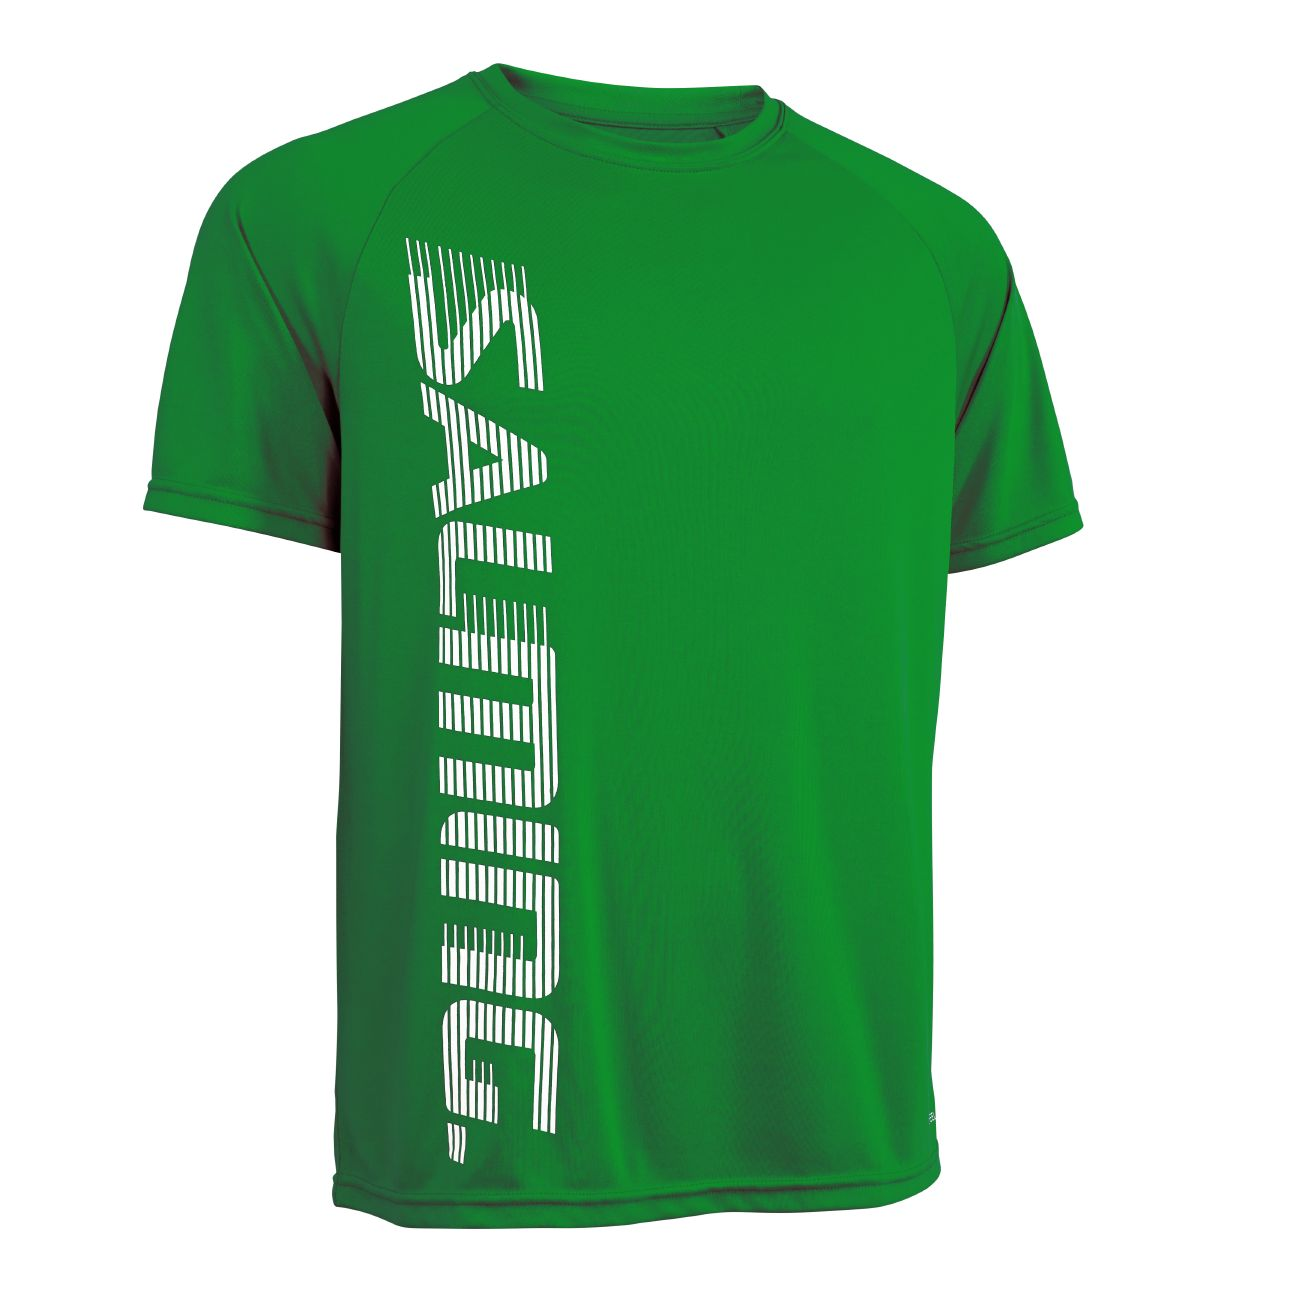 Salming Training Tee 2.0 Modrá, S